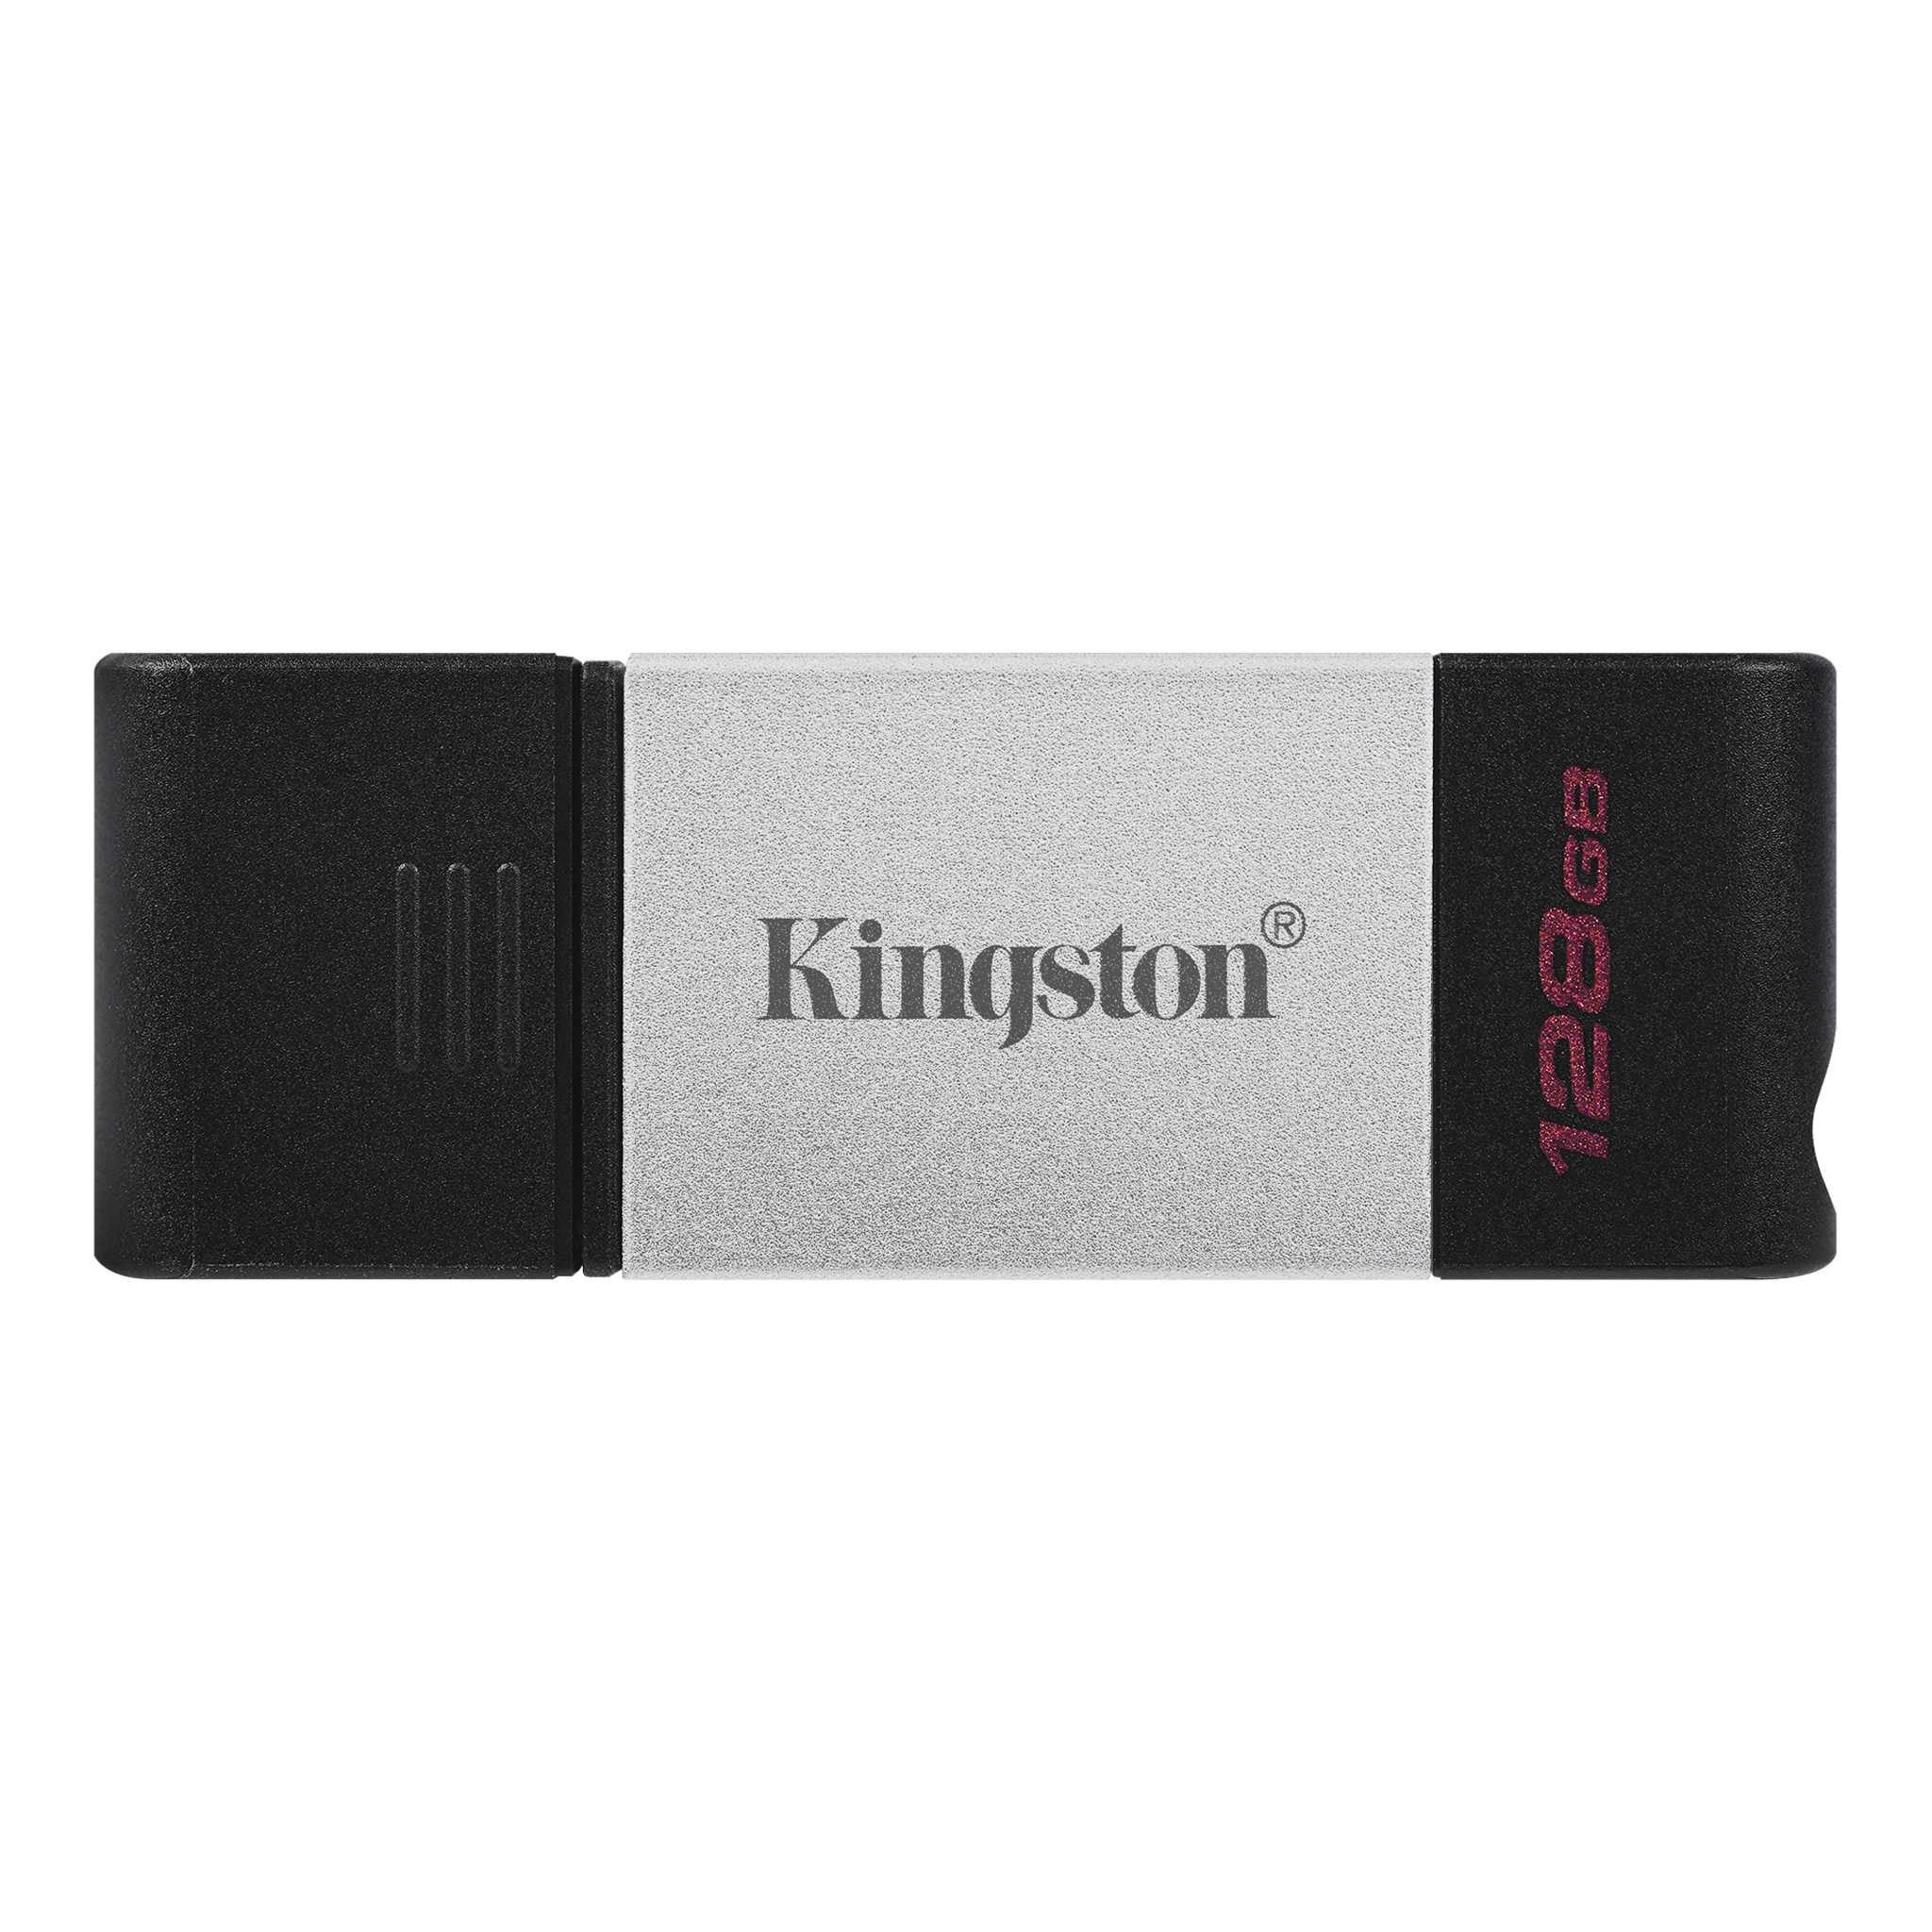 128GB Kingston DT80 USB-C 3.2 gen. 1